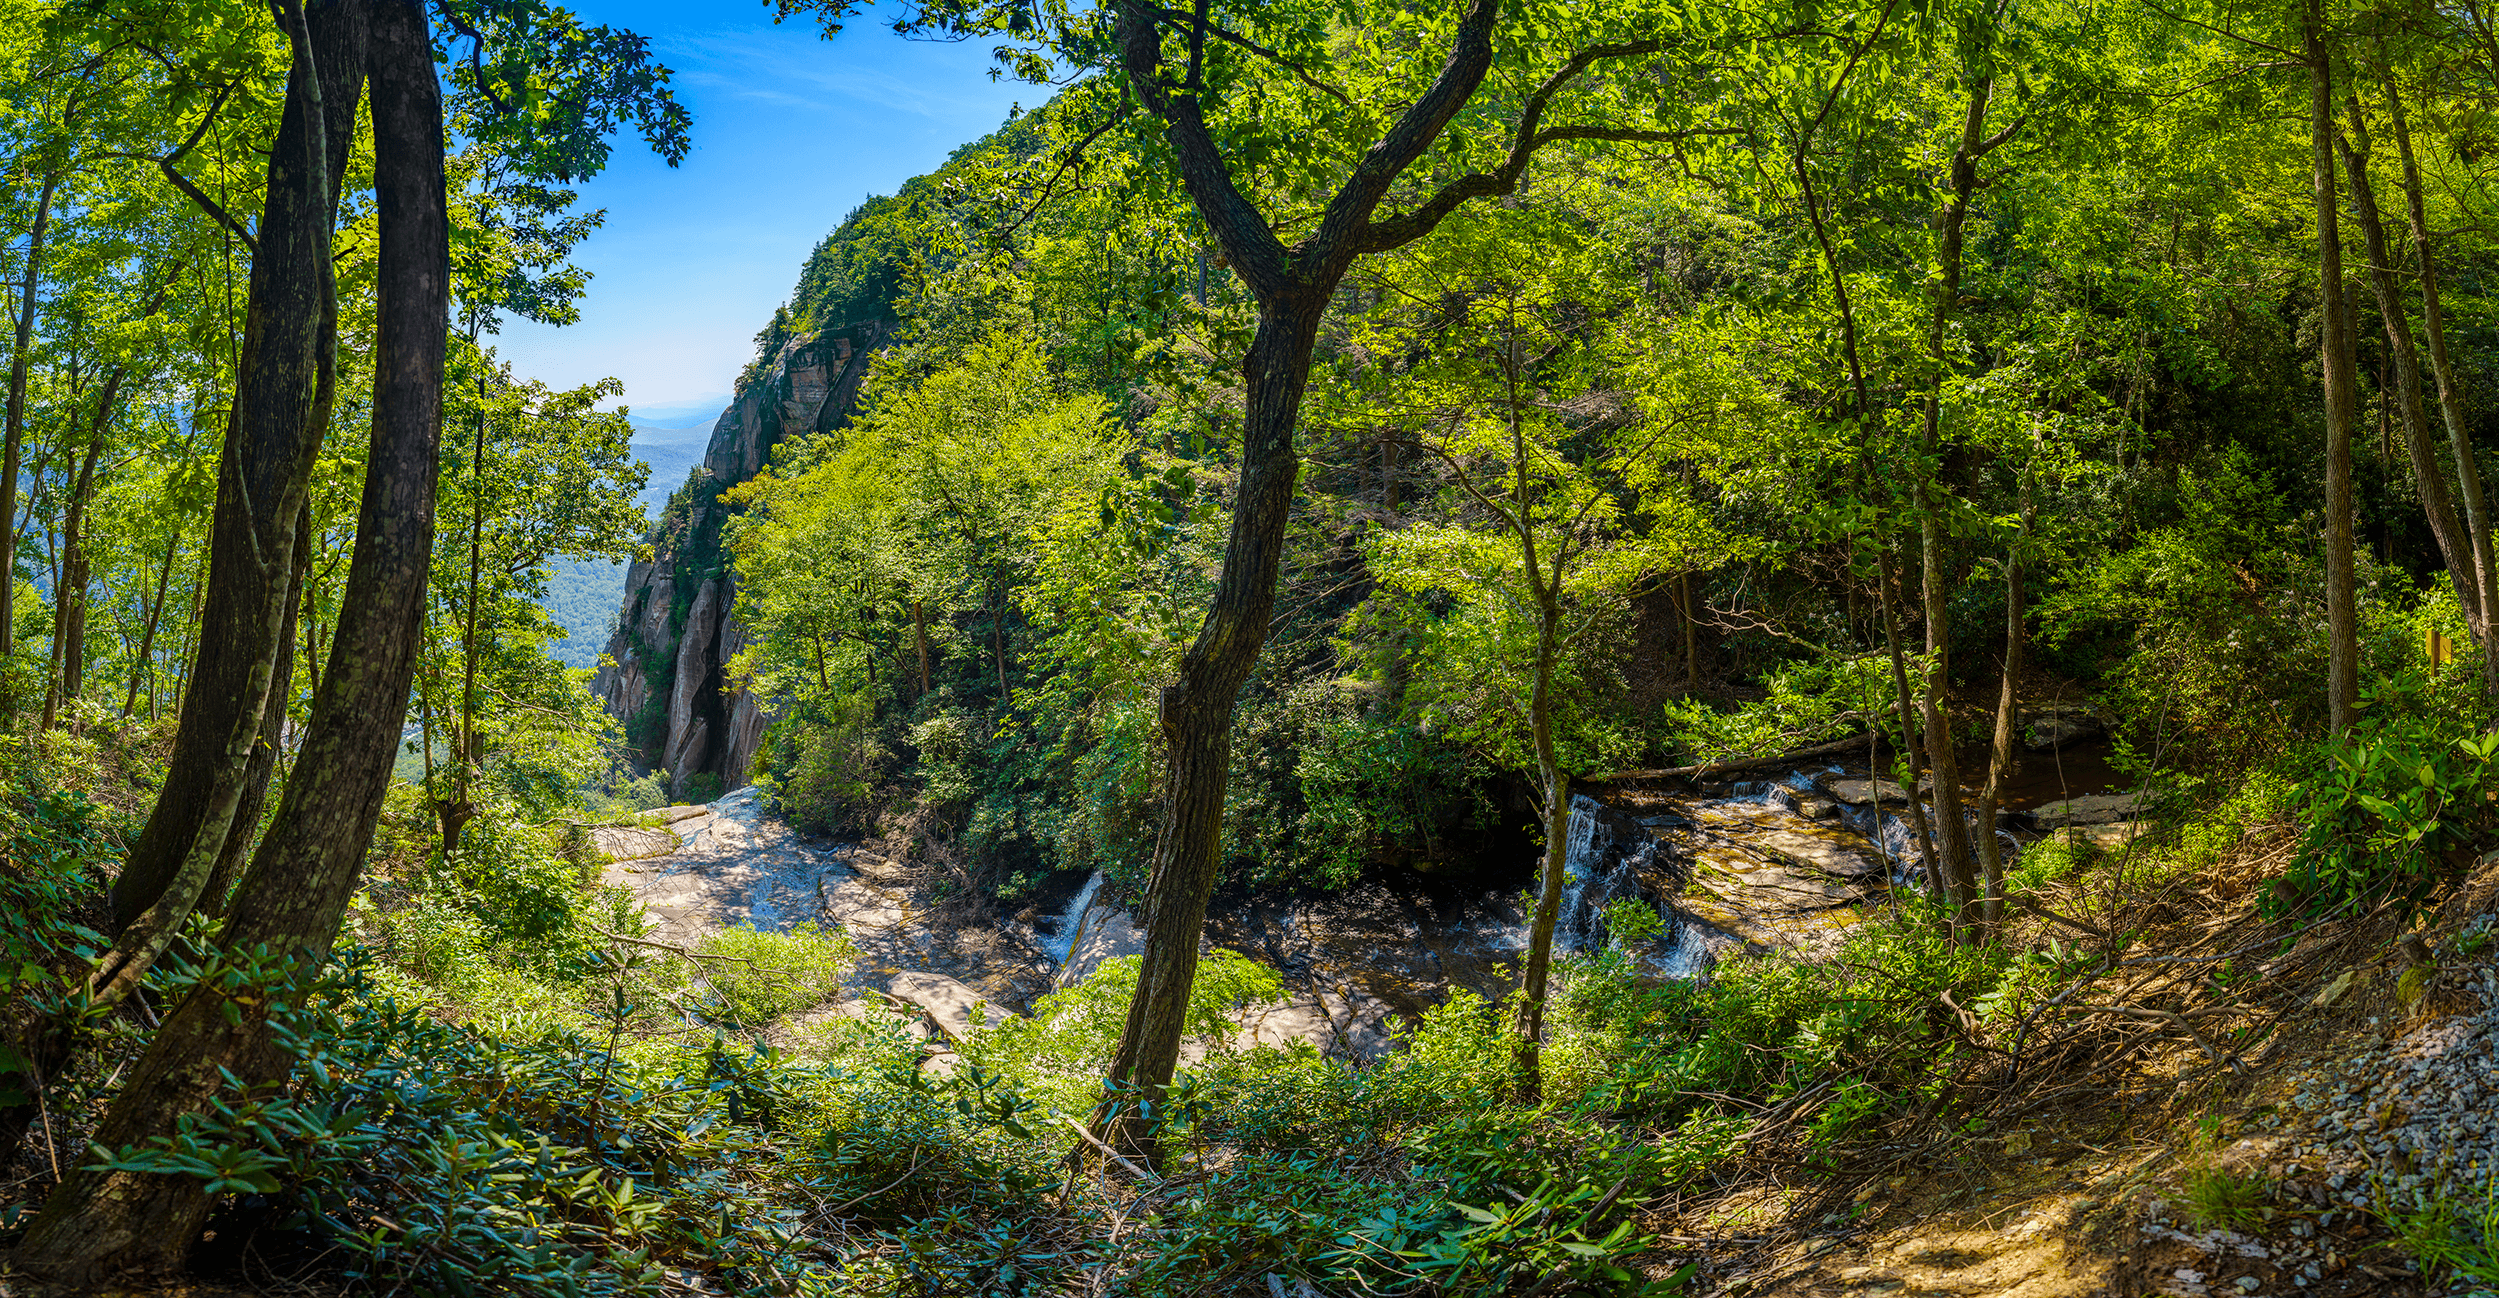 The  Skyline Trail  ends at the viewing platform (elevation 2,590 feet -789 meters). The platform offers scenic views of  Hickory Nut Gorge  and  Falls Creek , whose 404-foot plunge begins here.